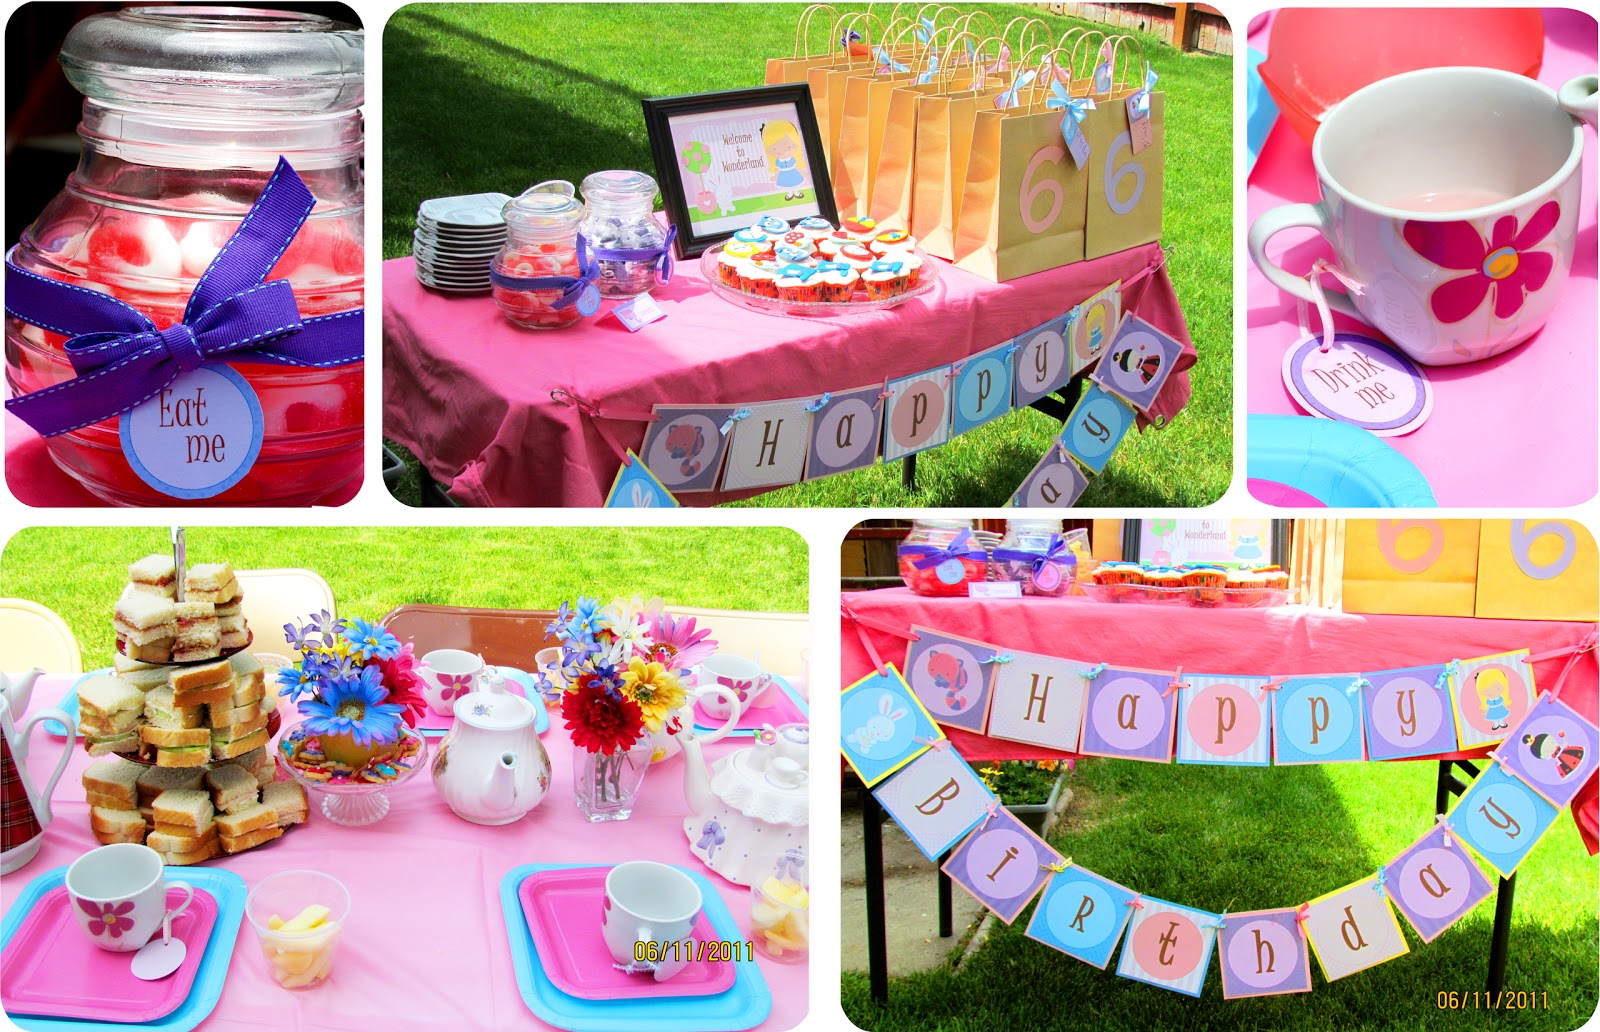 Tea party decorations party favors ideas - Mad hatter tea party decoration ideas ...